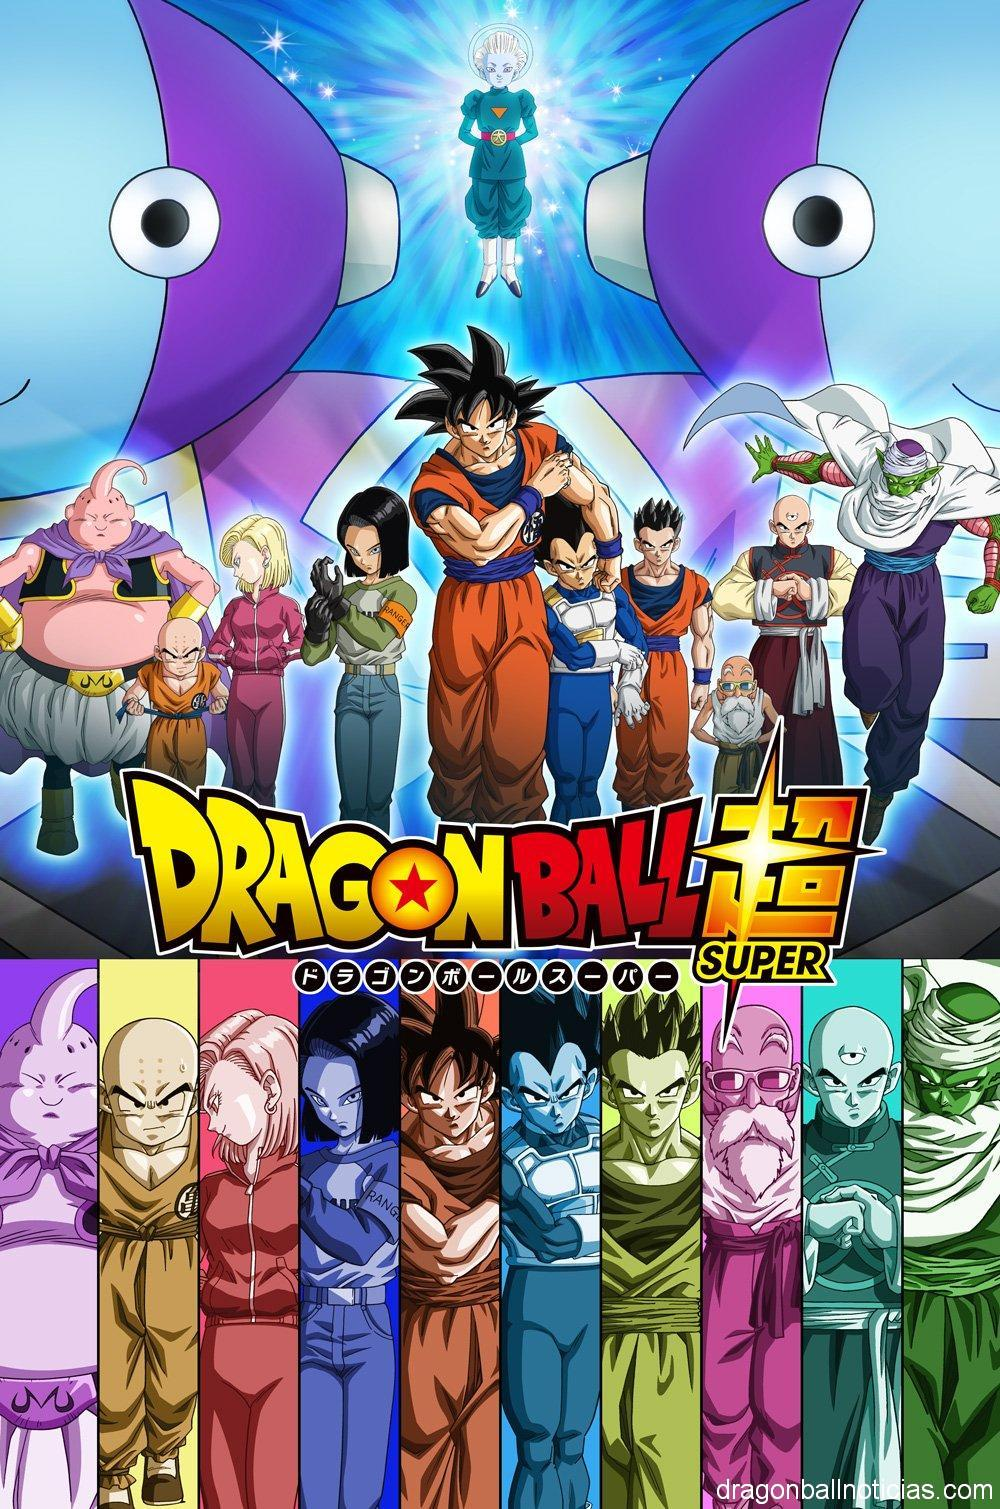 nuevo arco de Dragon Ball Super